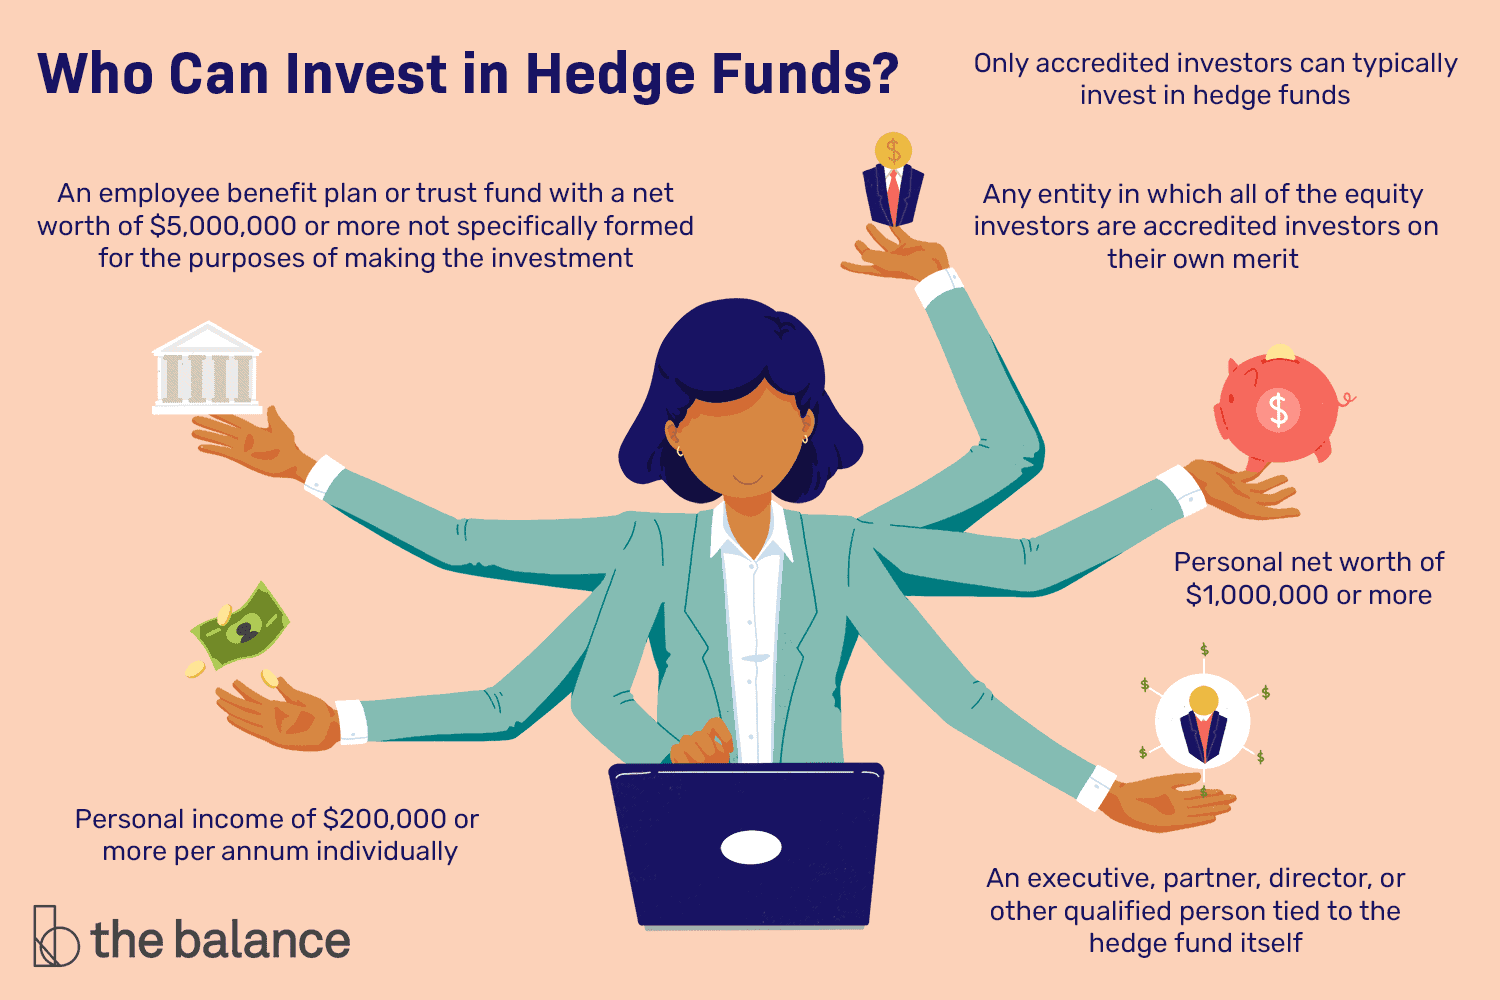 Investing hedge funds 4 key things consider